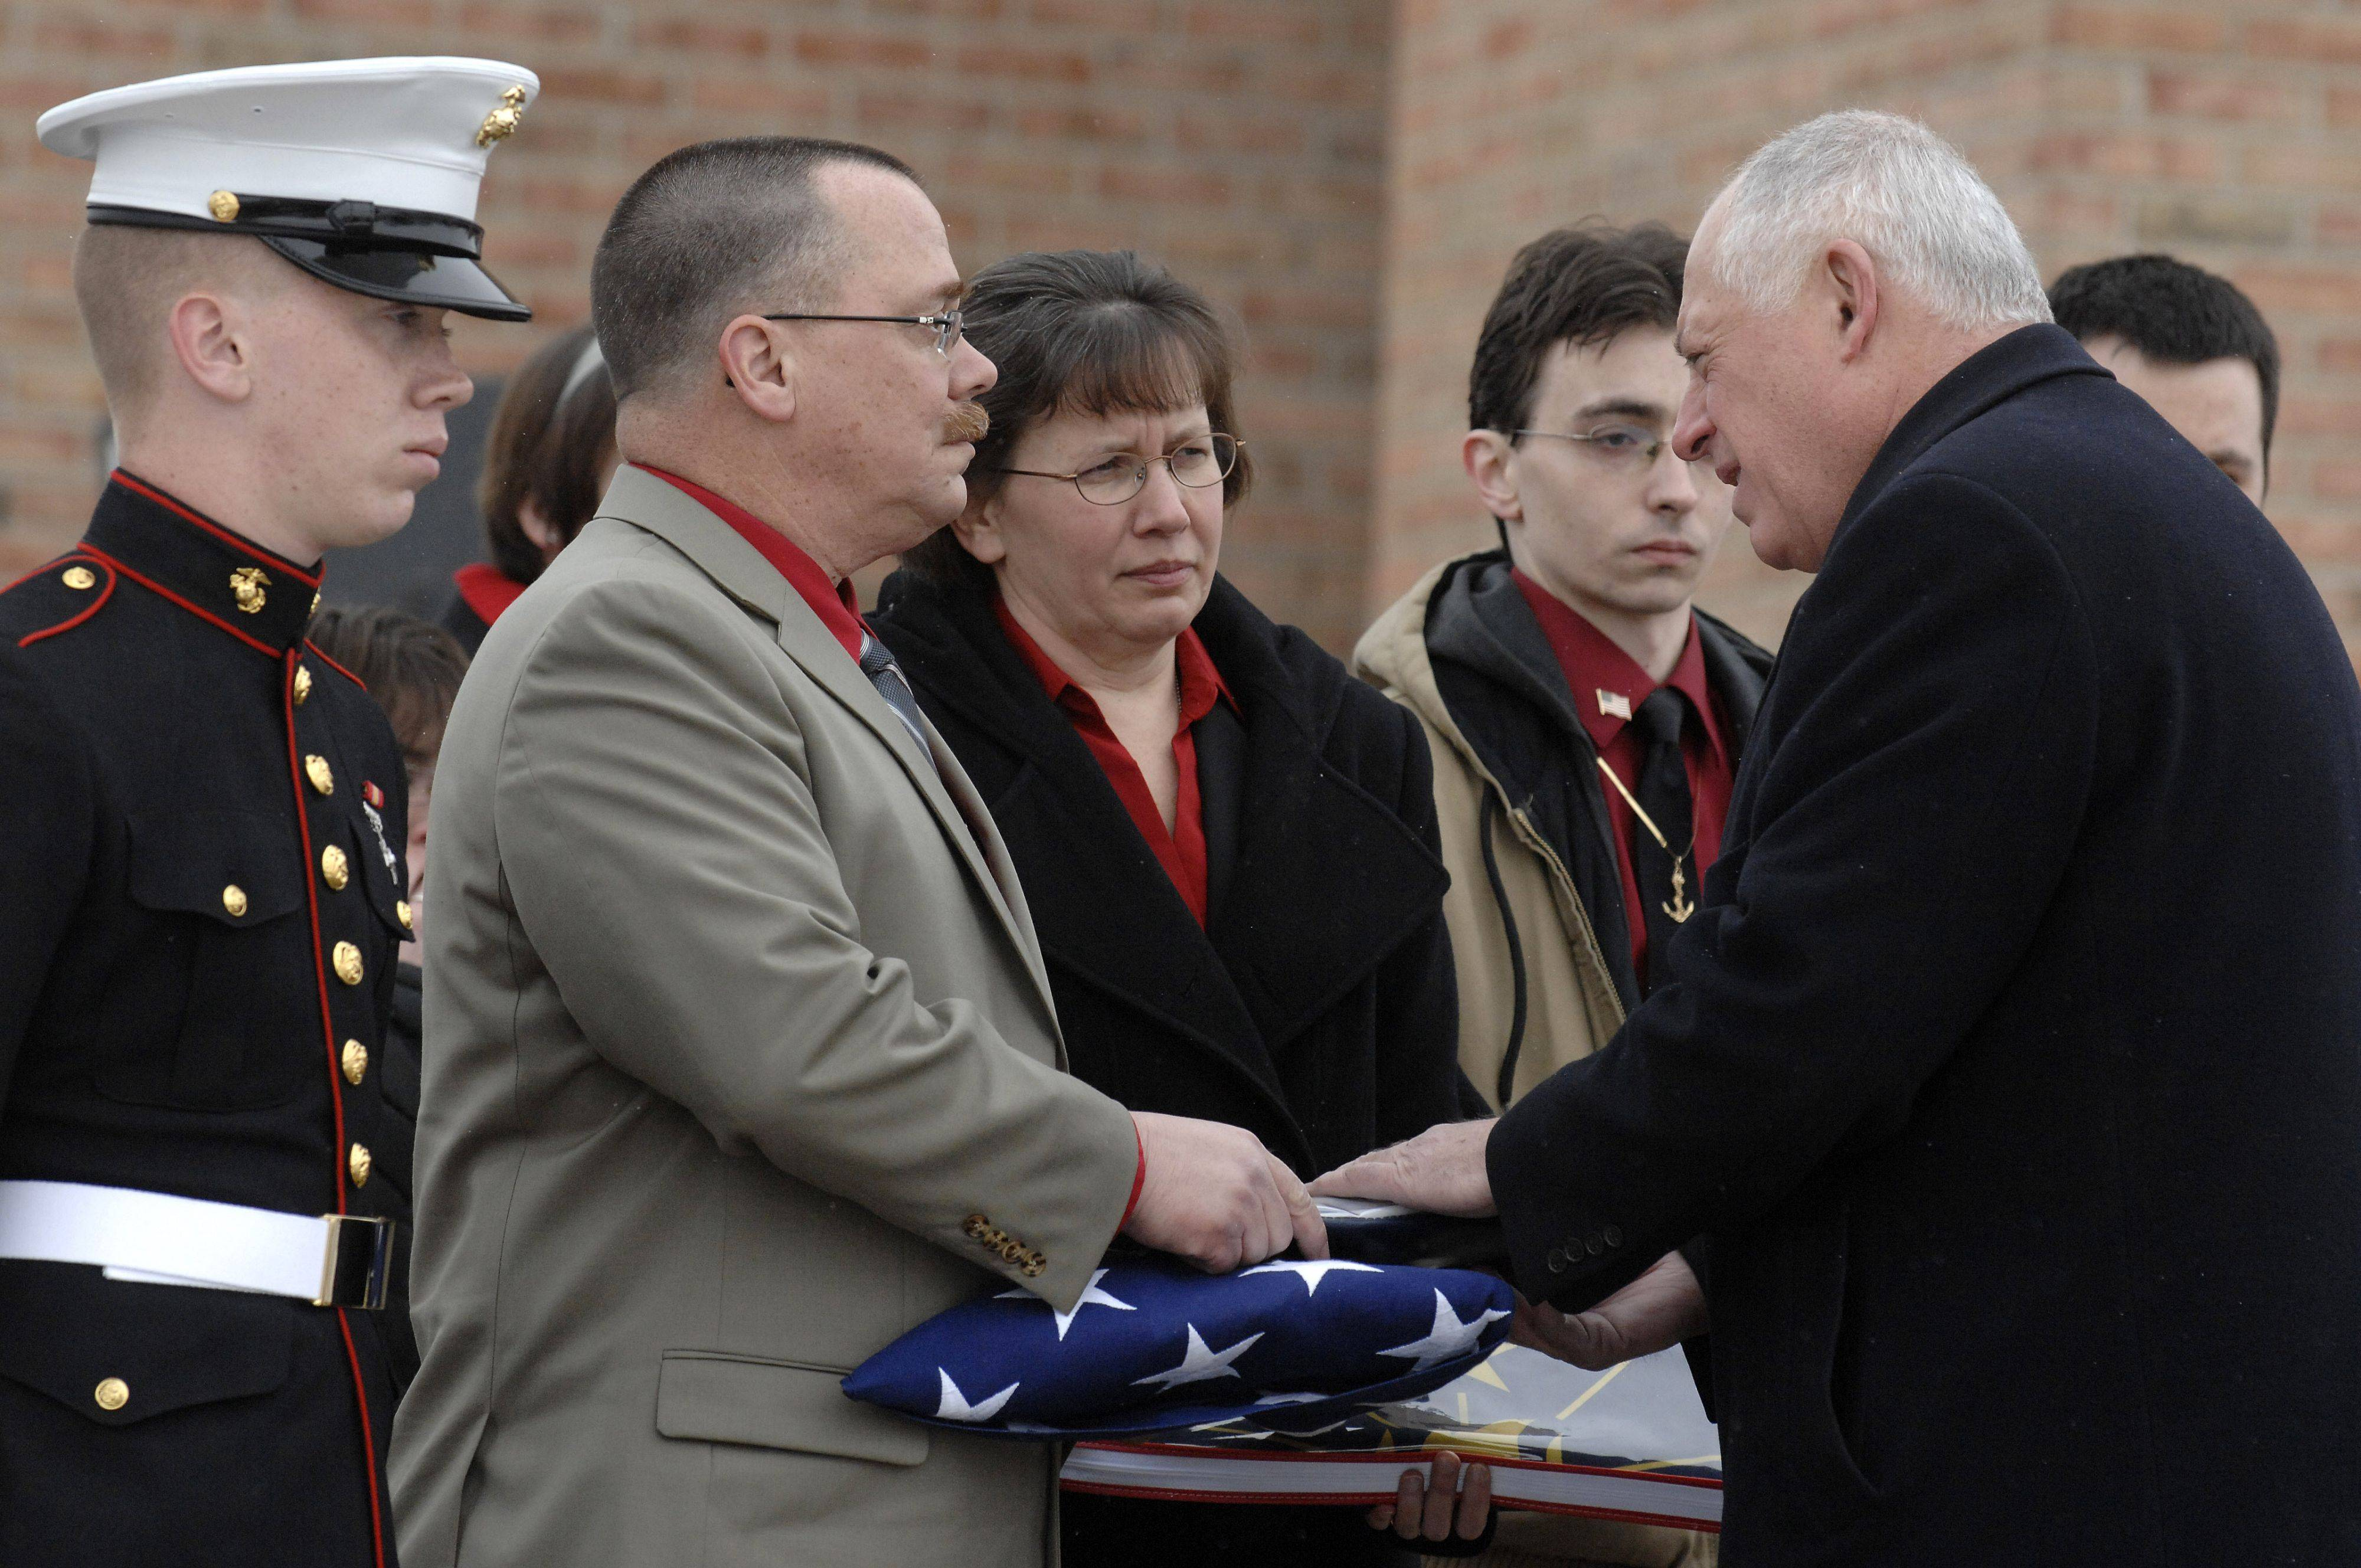 Illinois Governor Pat Quinn presents the Illinois state flag to Bob and Mary Patterson of North Aurora at the funeral of their son, Spc. Christopher A. Patterson. Sons Carl, left, Thomas, right and Sean (behind Quinn) stand by.